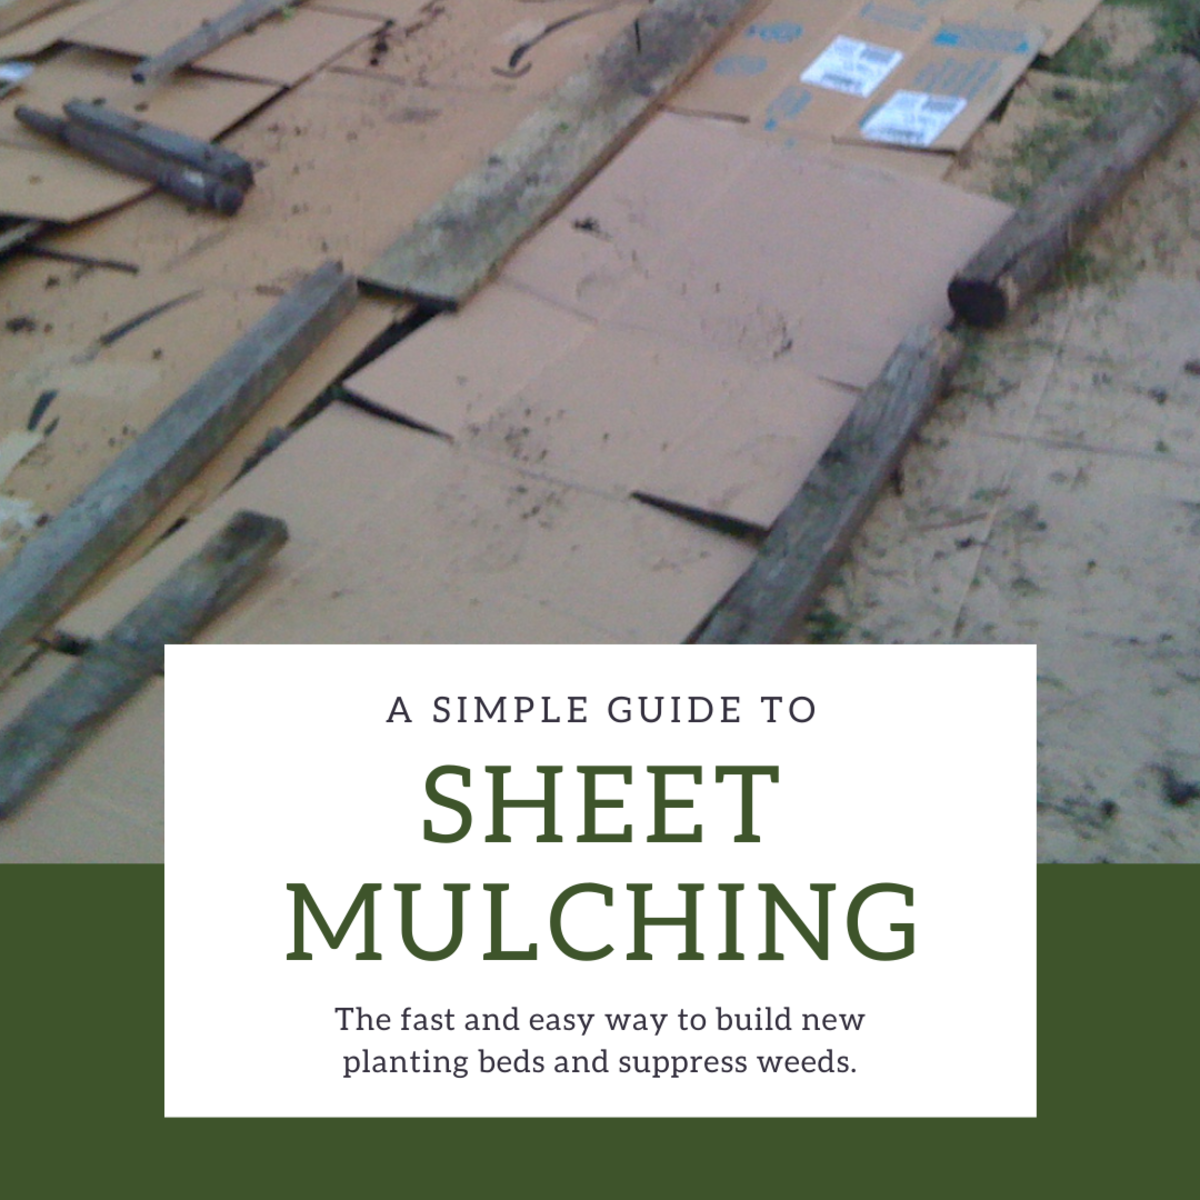 This guide will break down what you need to know to start sheet mulching.